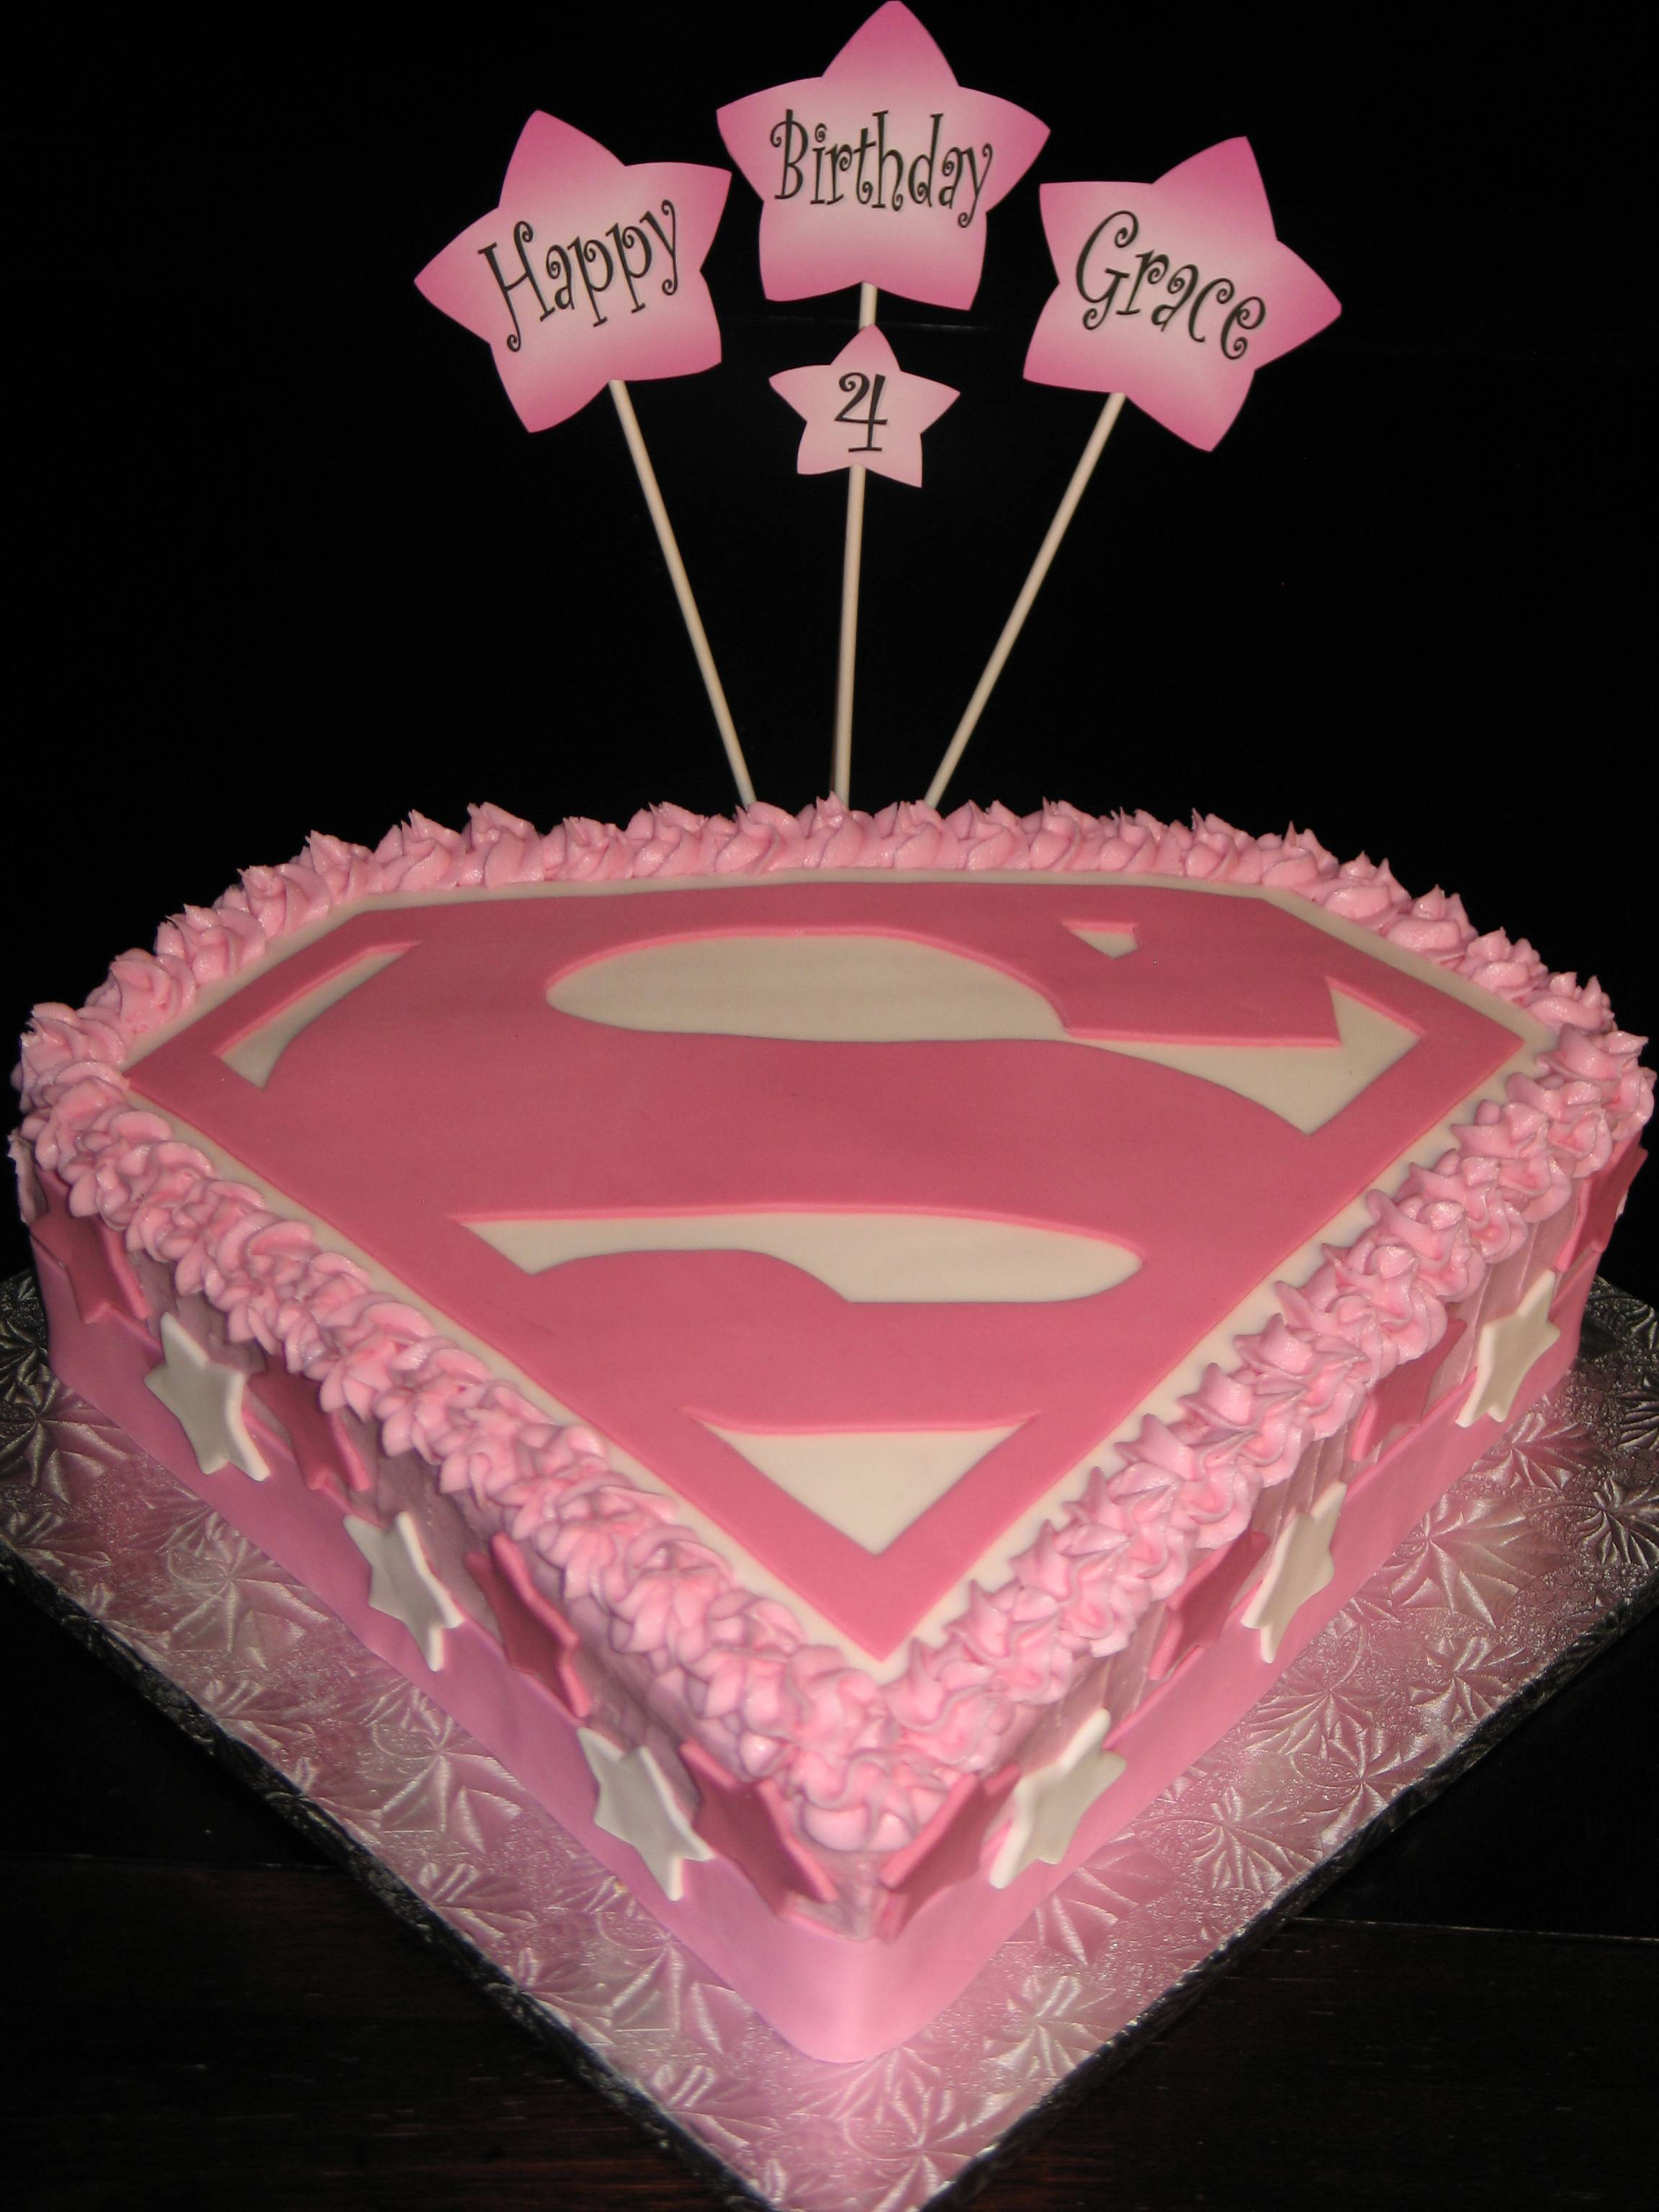 Tremendous 13 Supergirl Birthday Cakes Photo Super Girl Birthday Cake Funny Birthday Cards Online Elaedamsfinfo